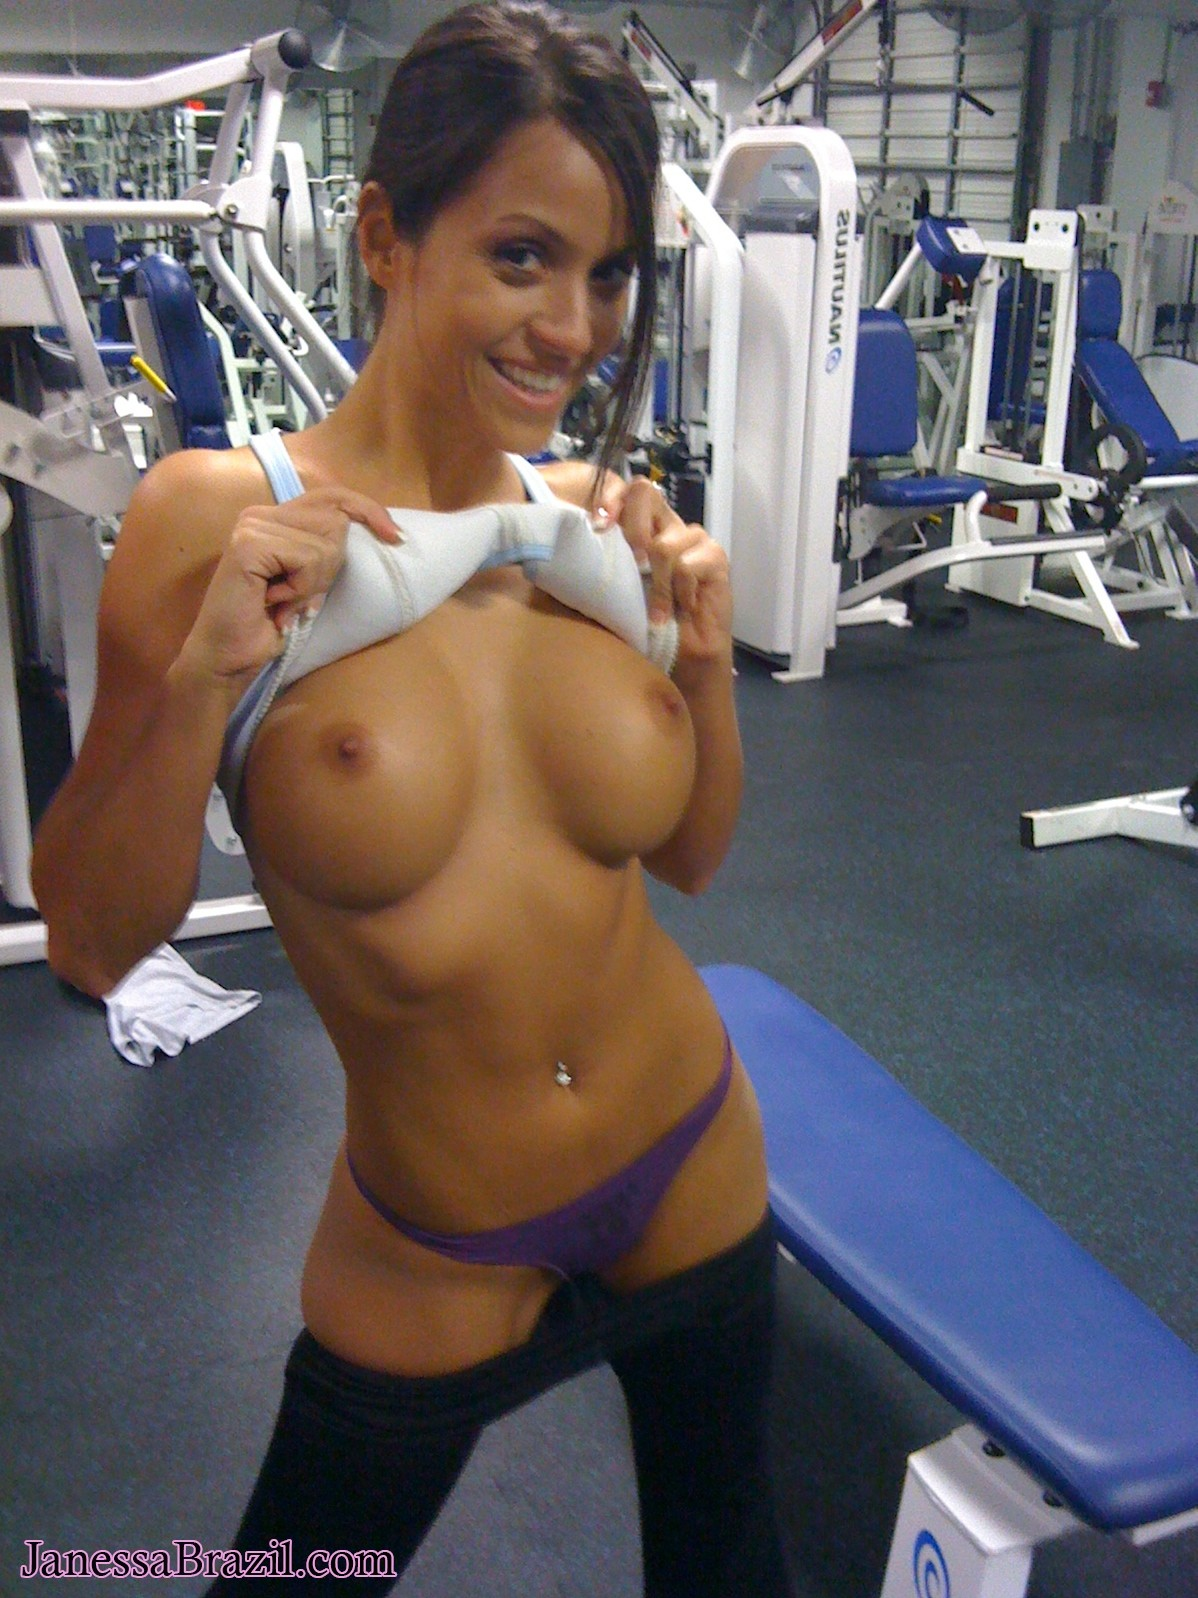 Sexy girl thats gyms naked — photo 7